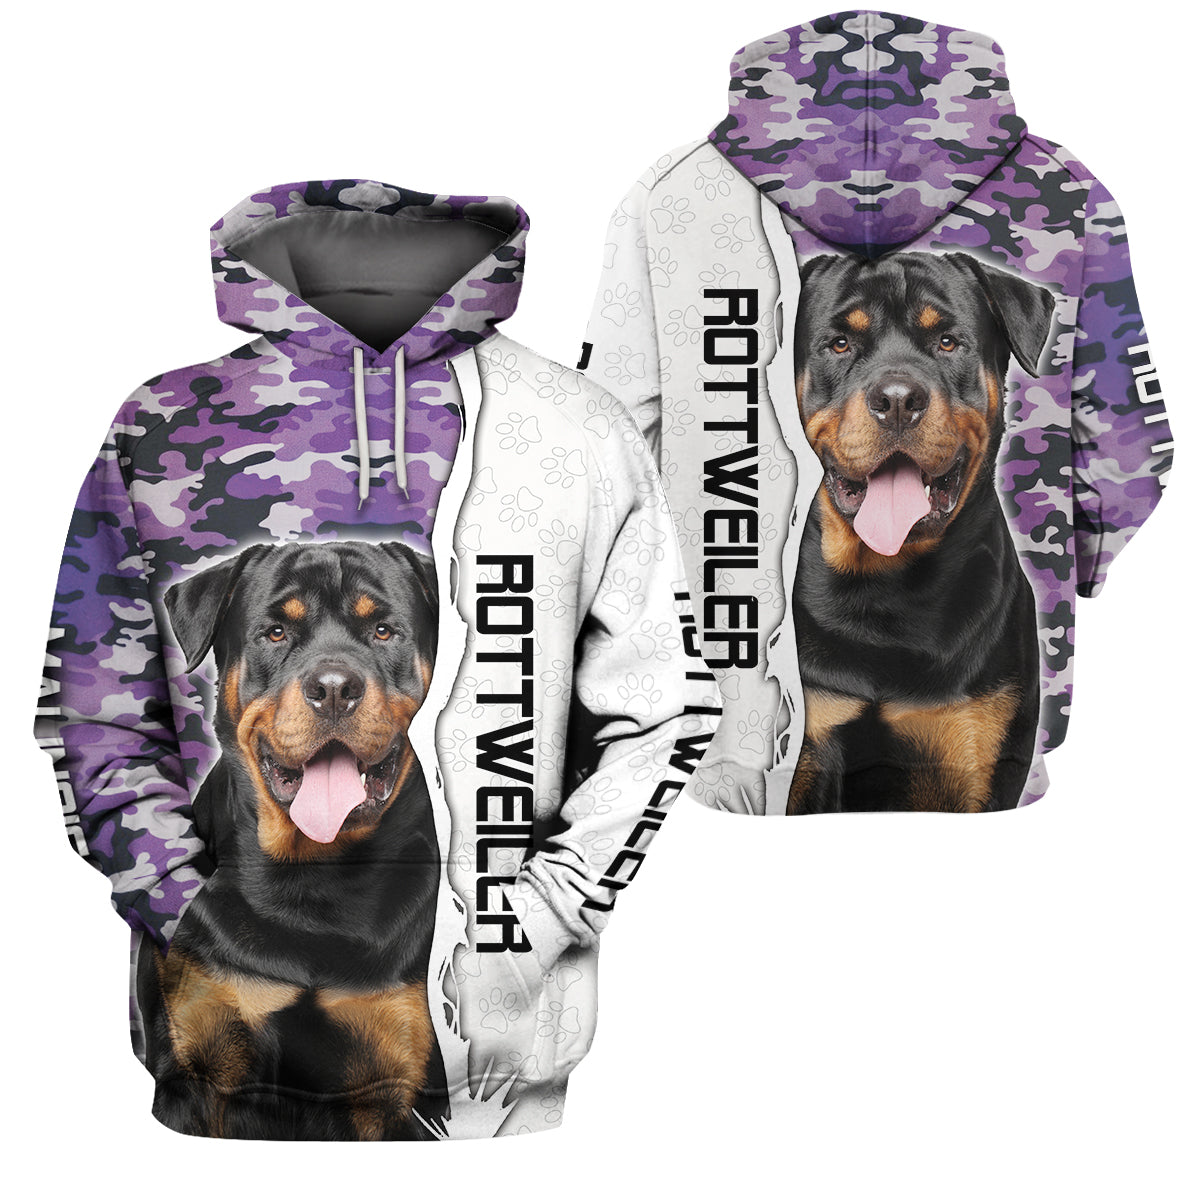 3D Apparel - Purple camouflage - Rottweiler